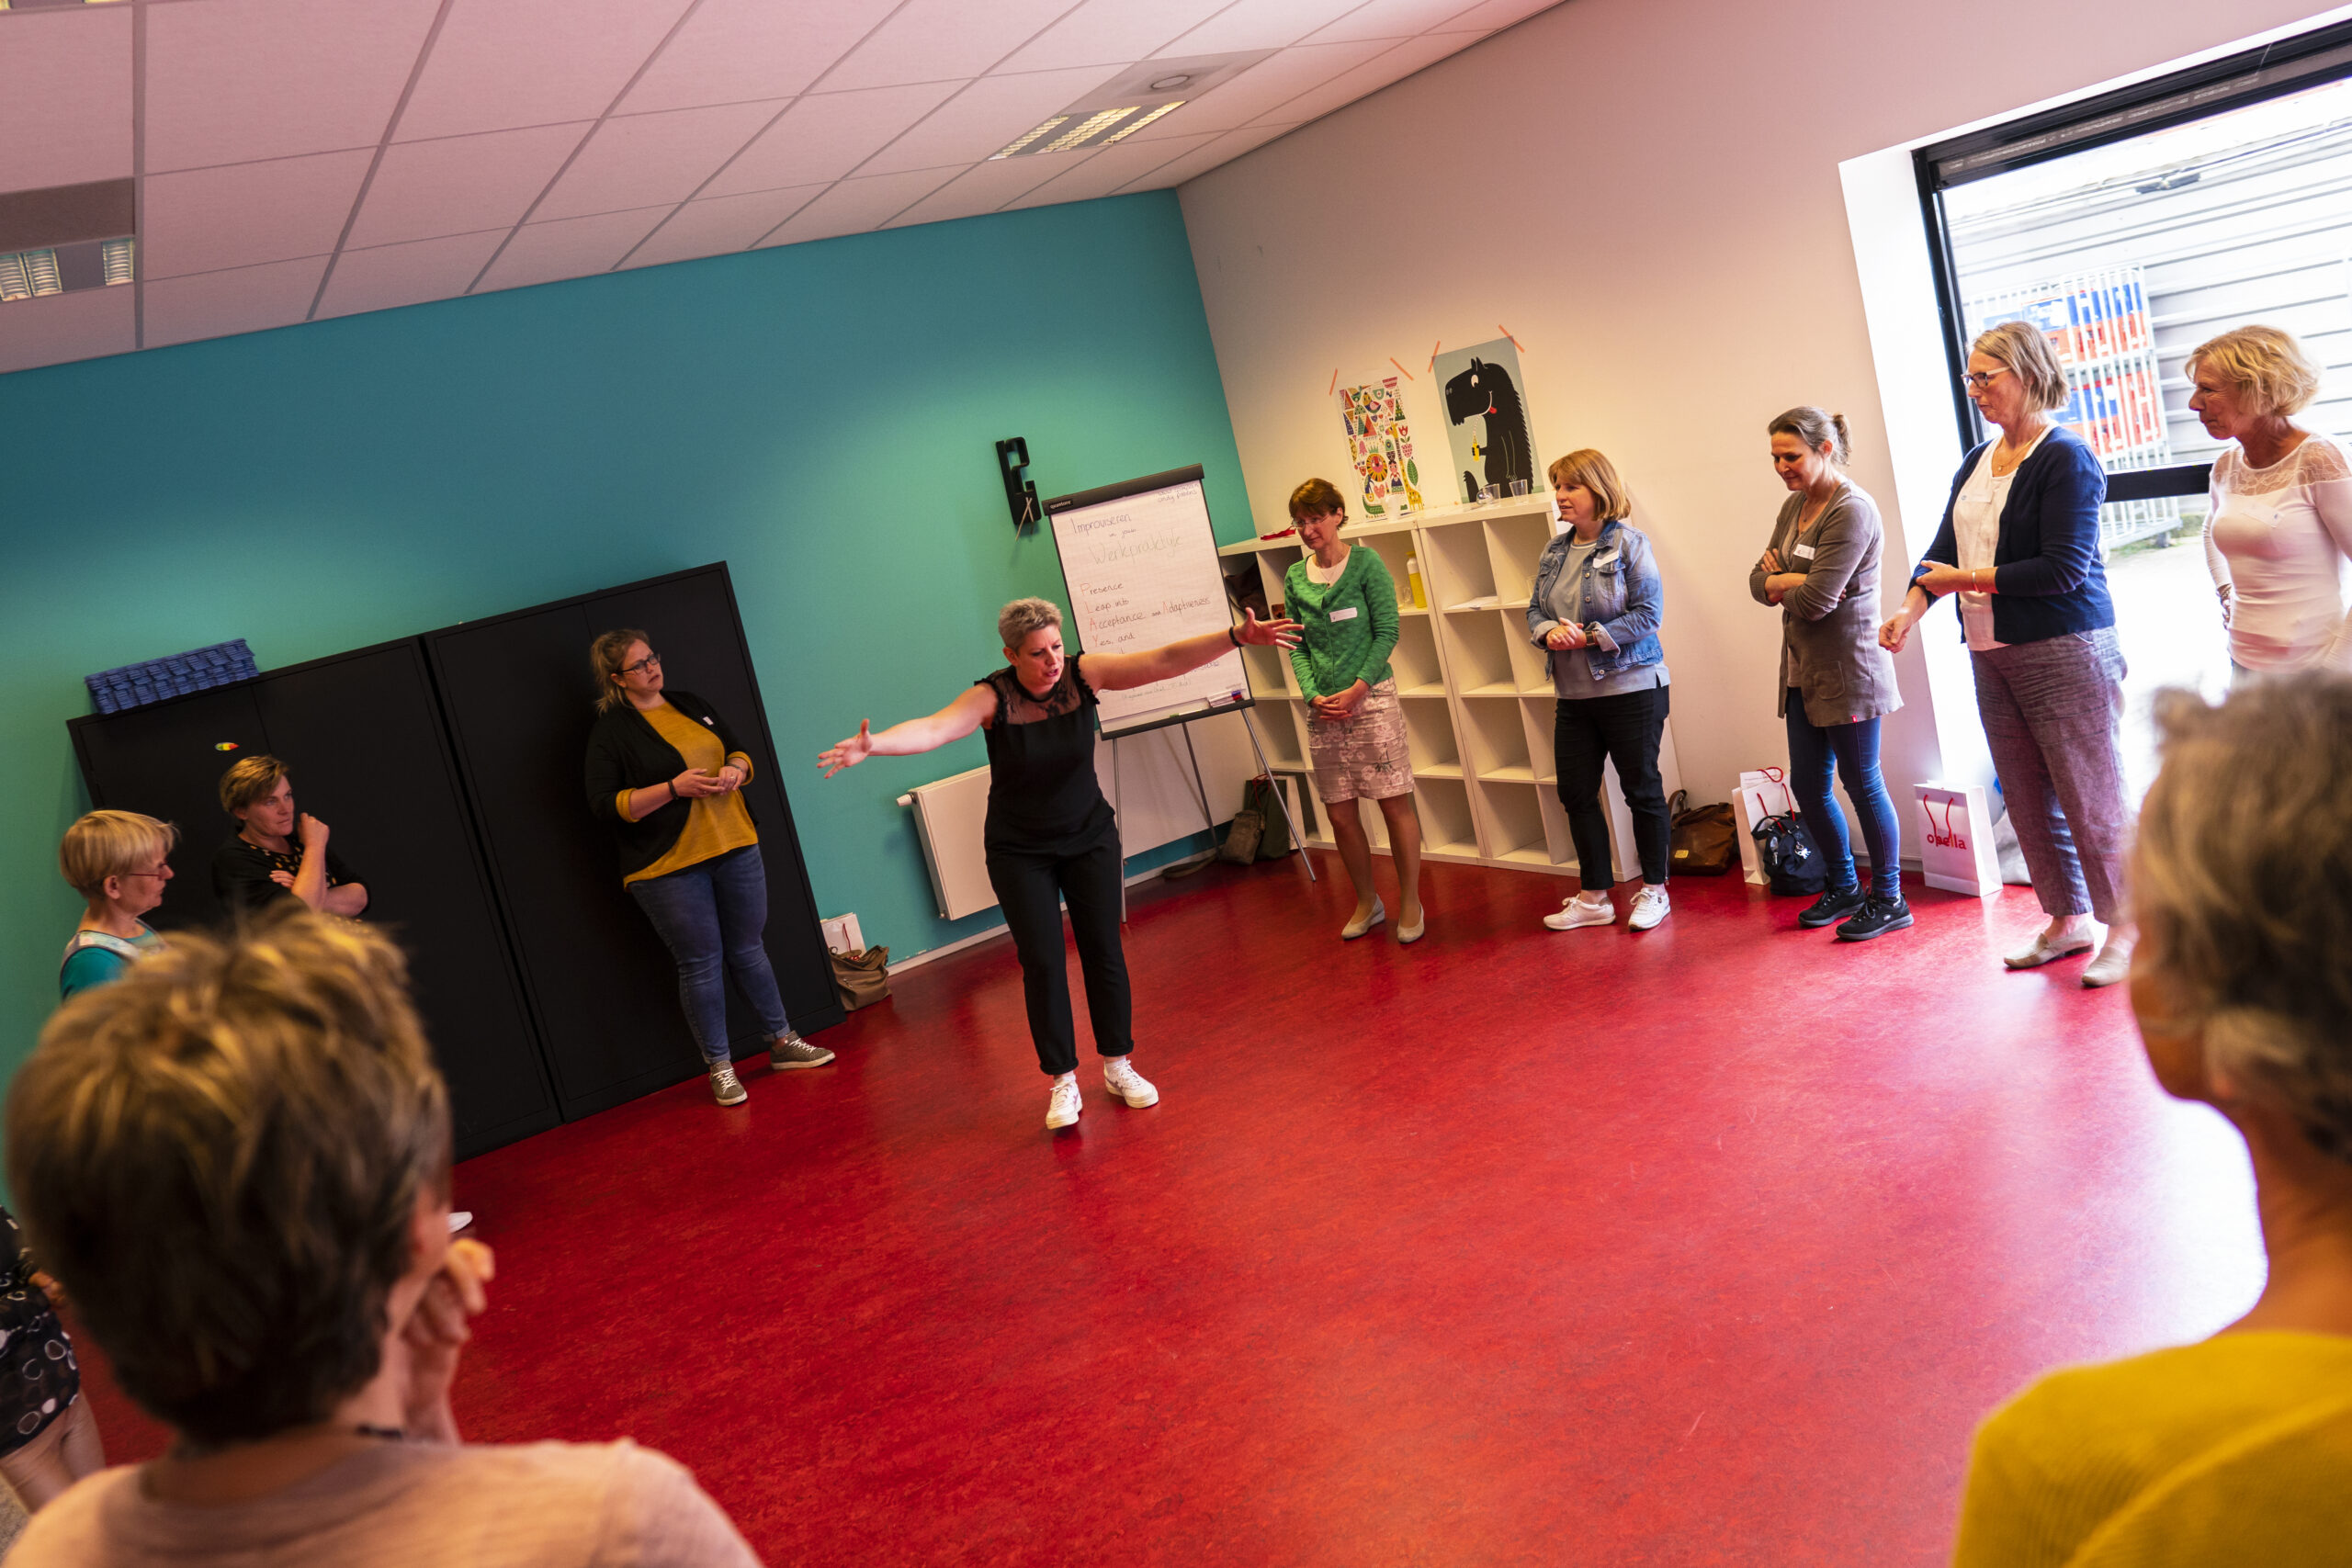 cindy-pittens-spelen-training-workshop